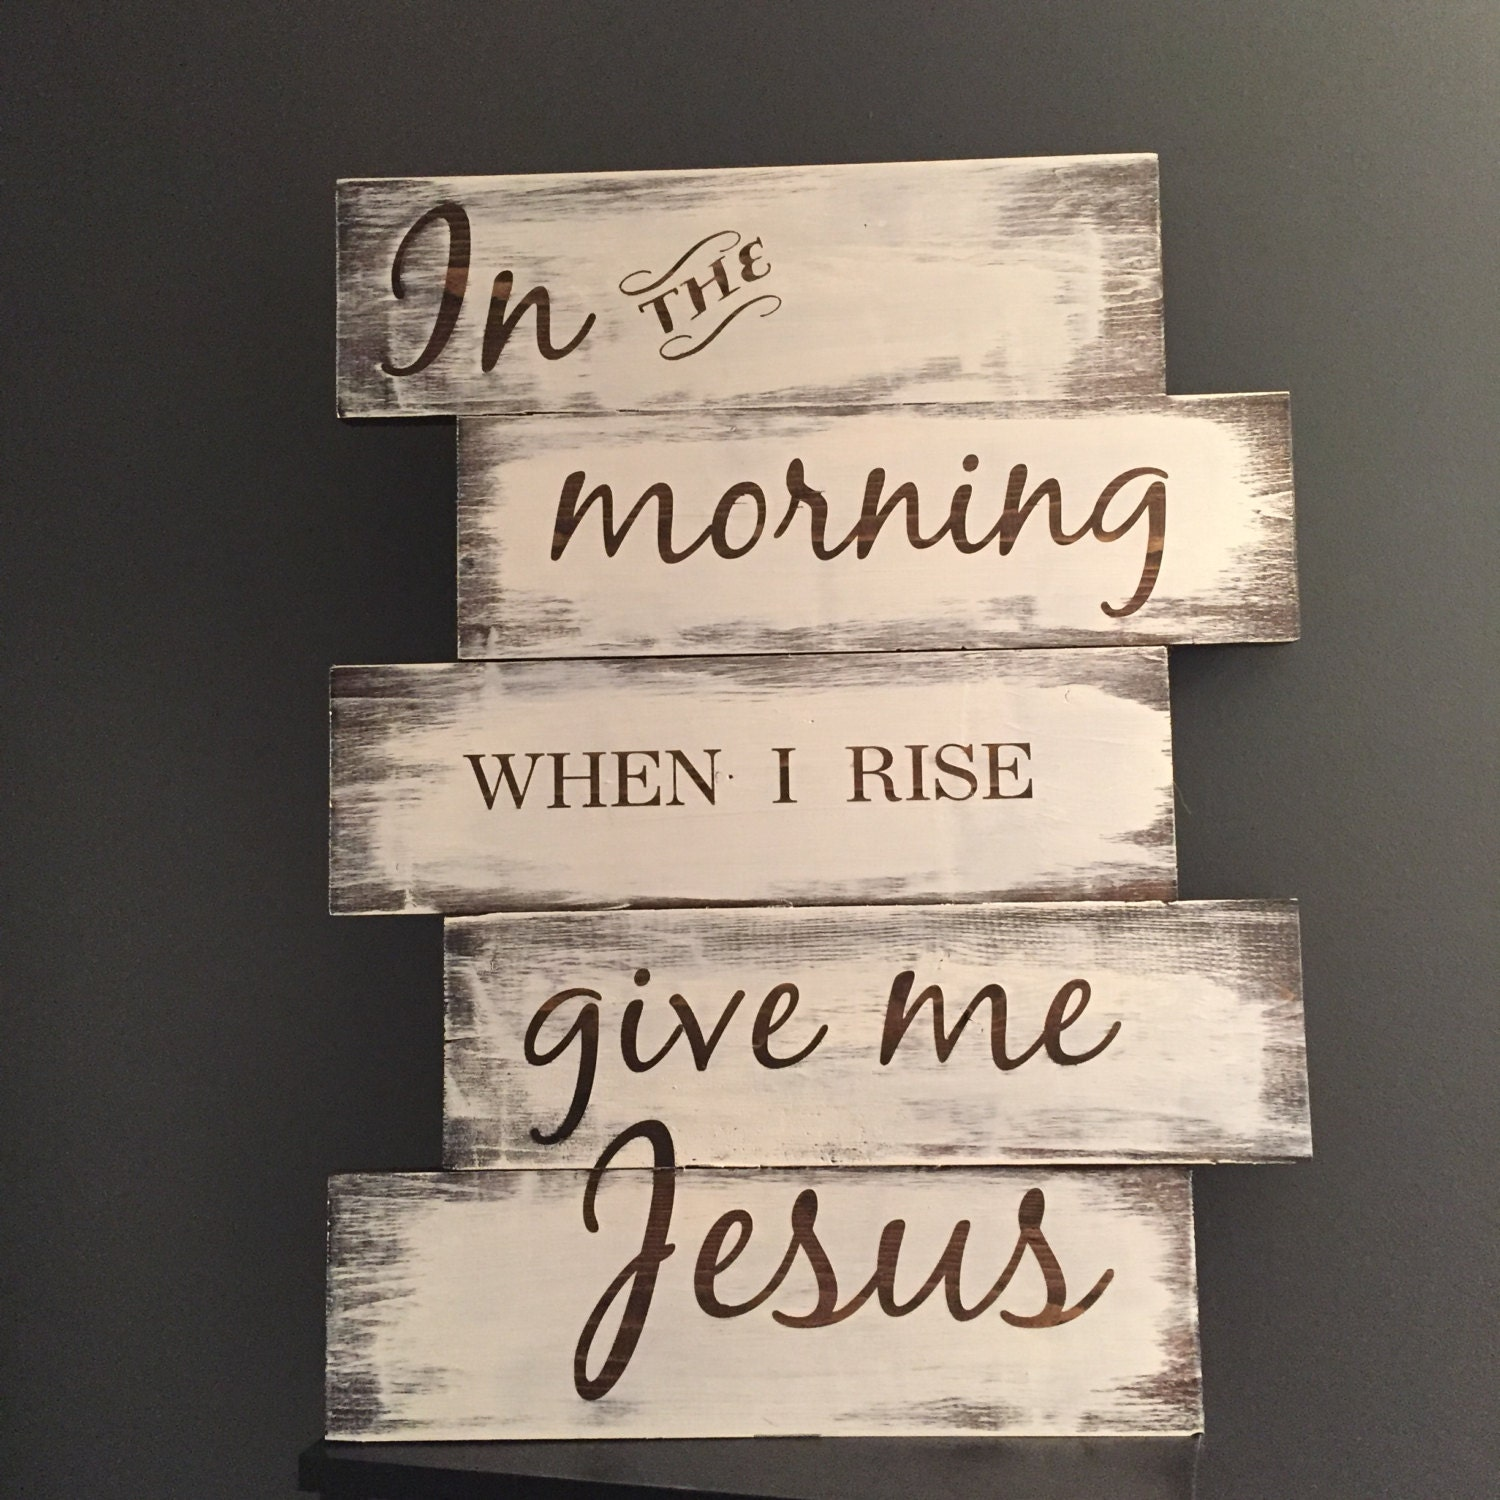 In The Morning When I Rise Give Me Jesuswood Sign Rustic. Thomas Edison Online College. Mortgage Clearing Tulsa Best Gold Buying Site. Newsletter Article Template Coupon Code At&t. Garage Door Repair Sandy Utah. Medical Transcriptionist Pay. Radioiodine Treatment For Hyperthyroidism. Project Management Software Online Free. Discover Identity Theft Ohio State Admissions